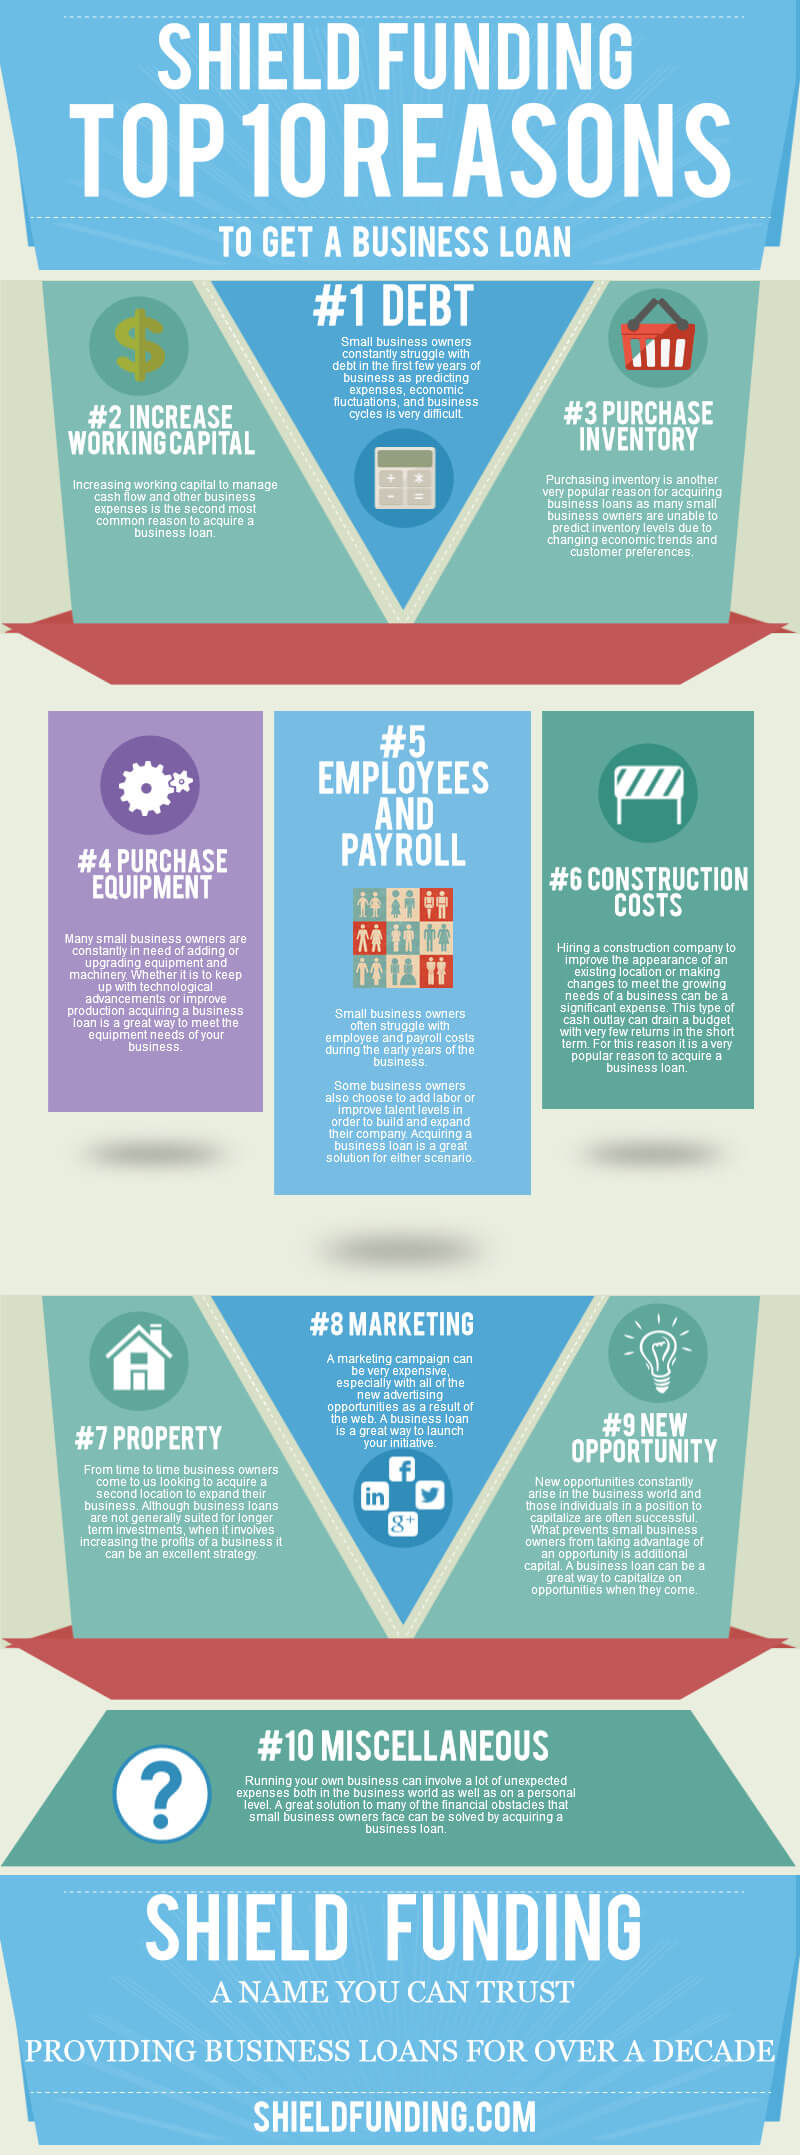 top-uses-for-business-loans